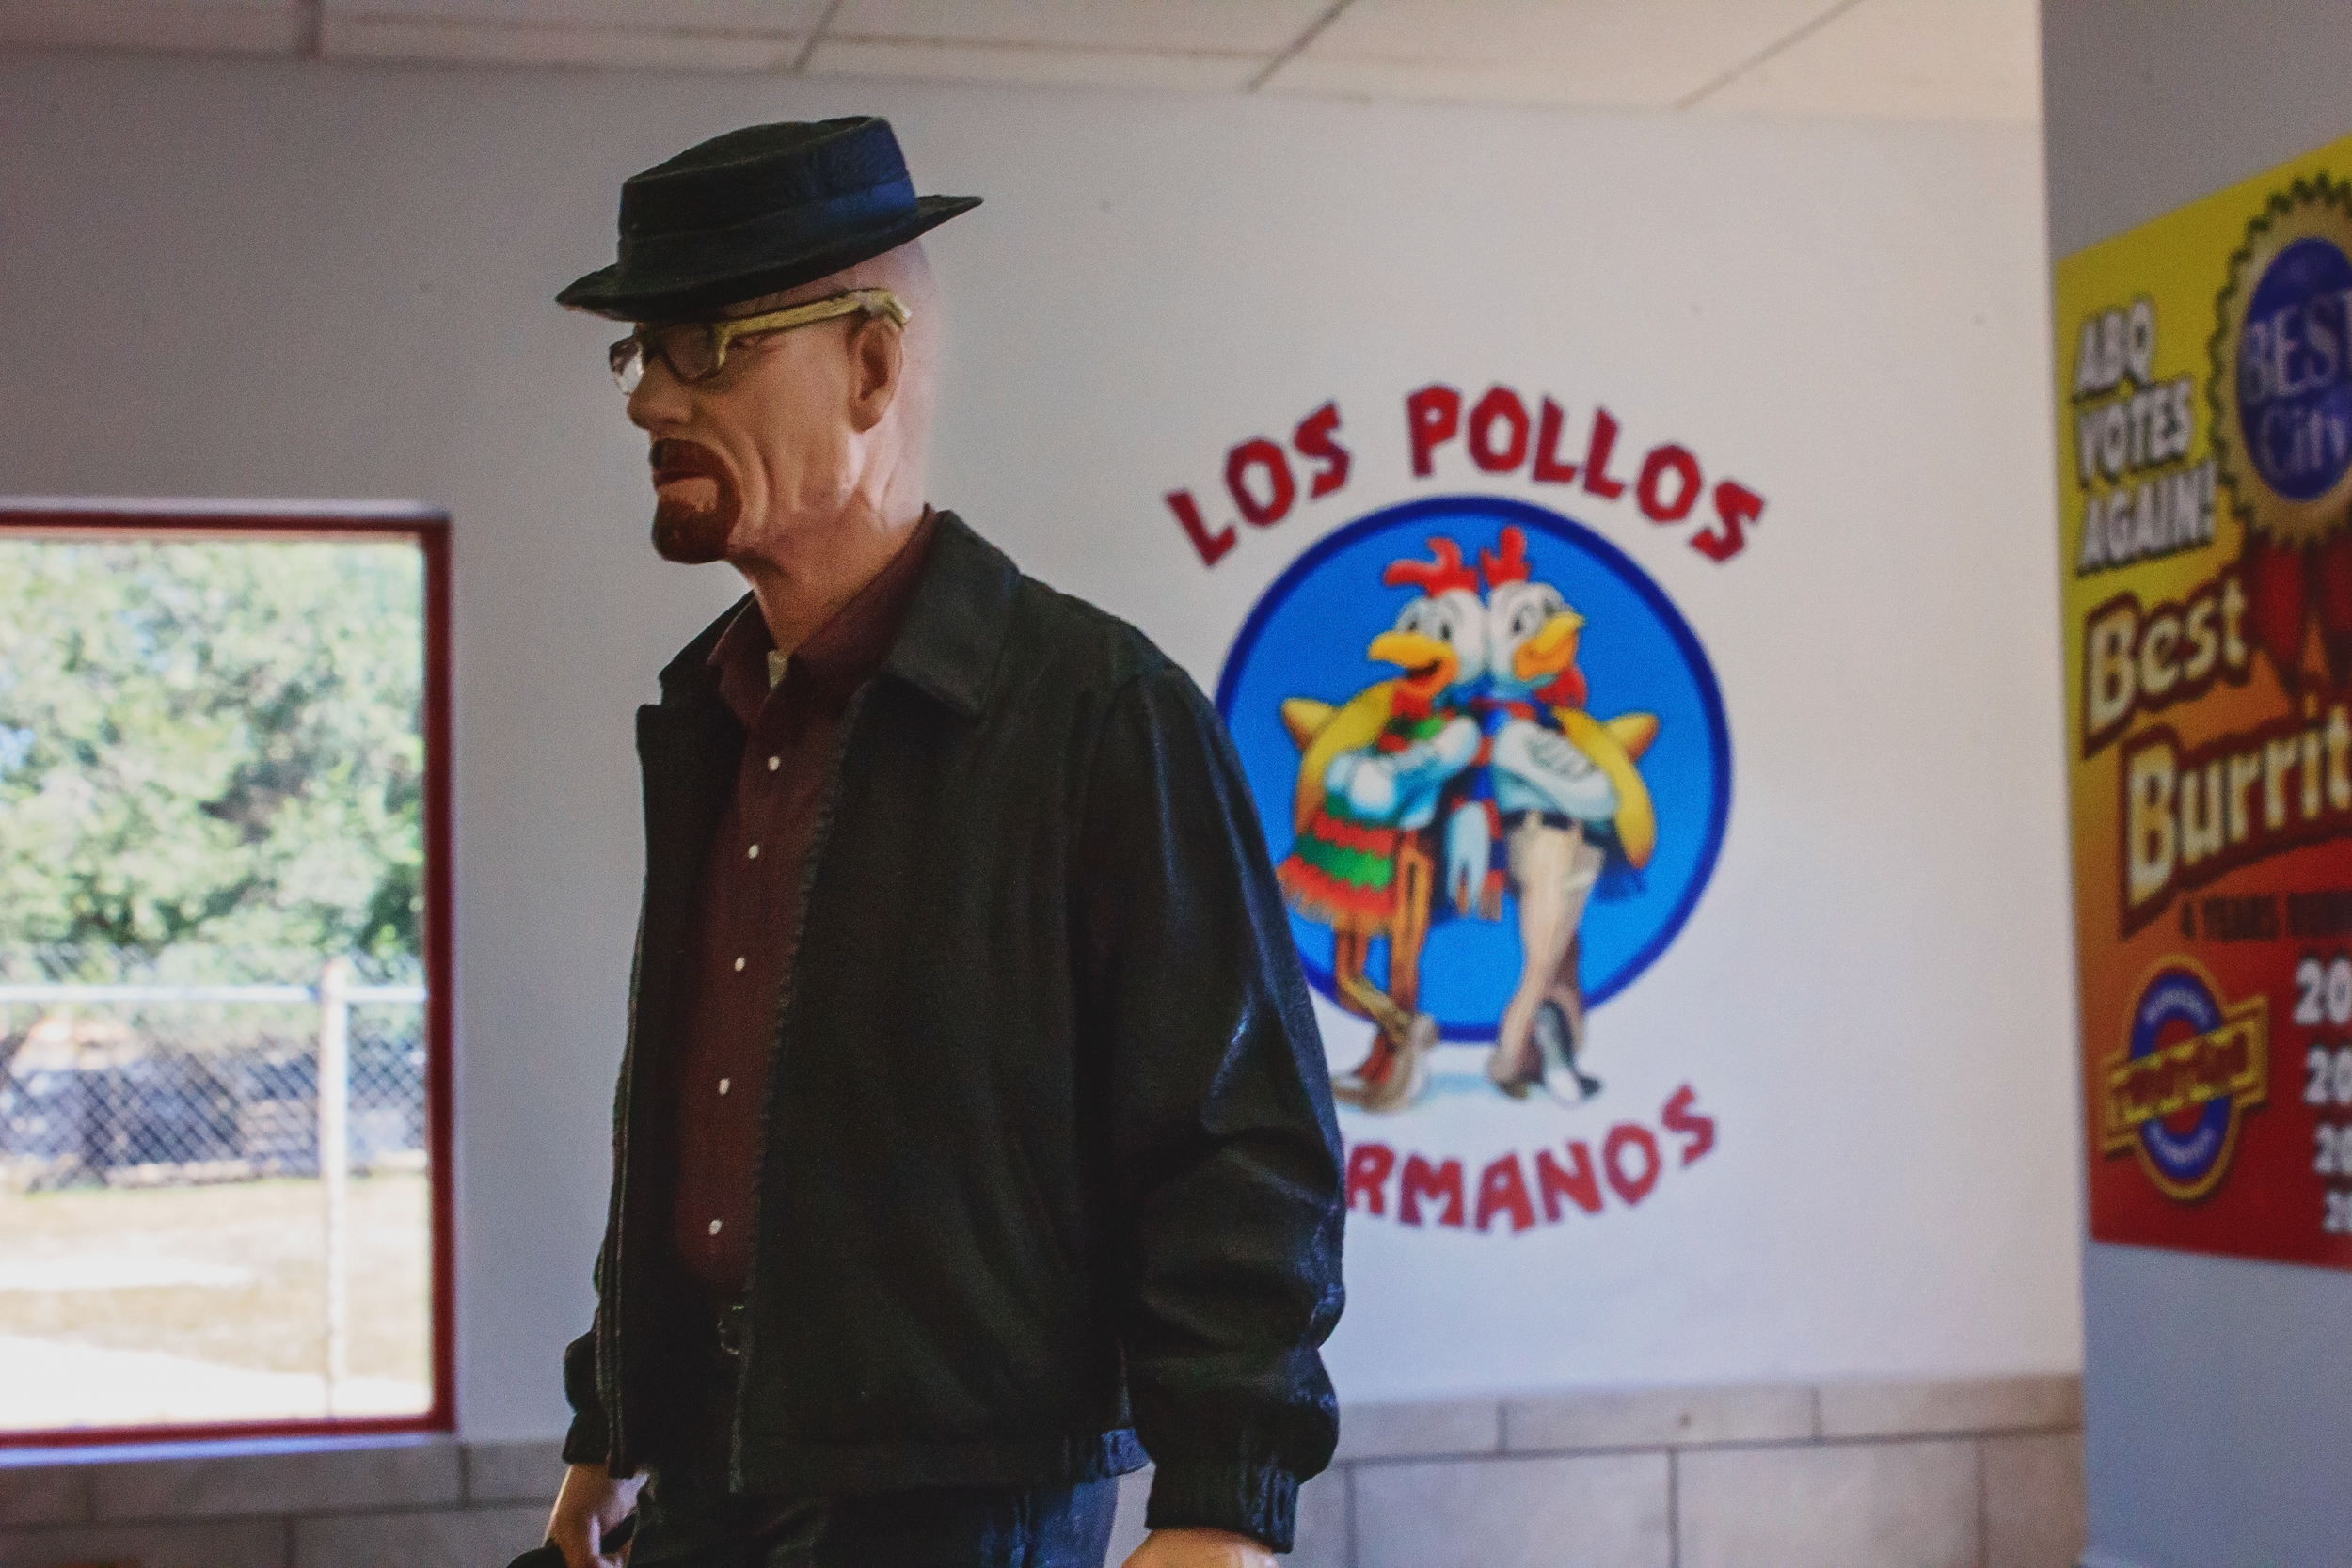 The famous fried chicken place run by Gus Fring in the show is in fact a chain that serves burritos and burgers. Twister's interior remains almost exactly the same as in the TV show, so feel free to take a picture in the famous booth that Walter White used to sit.